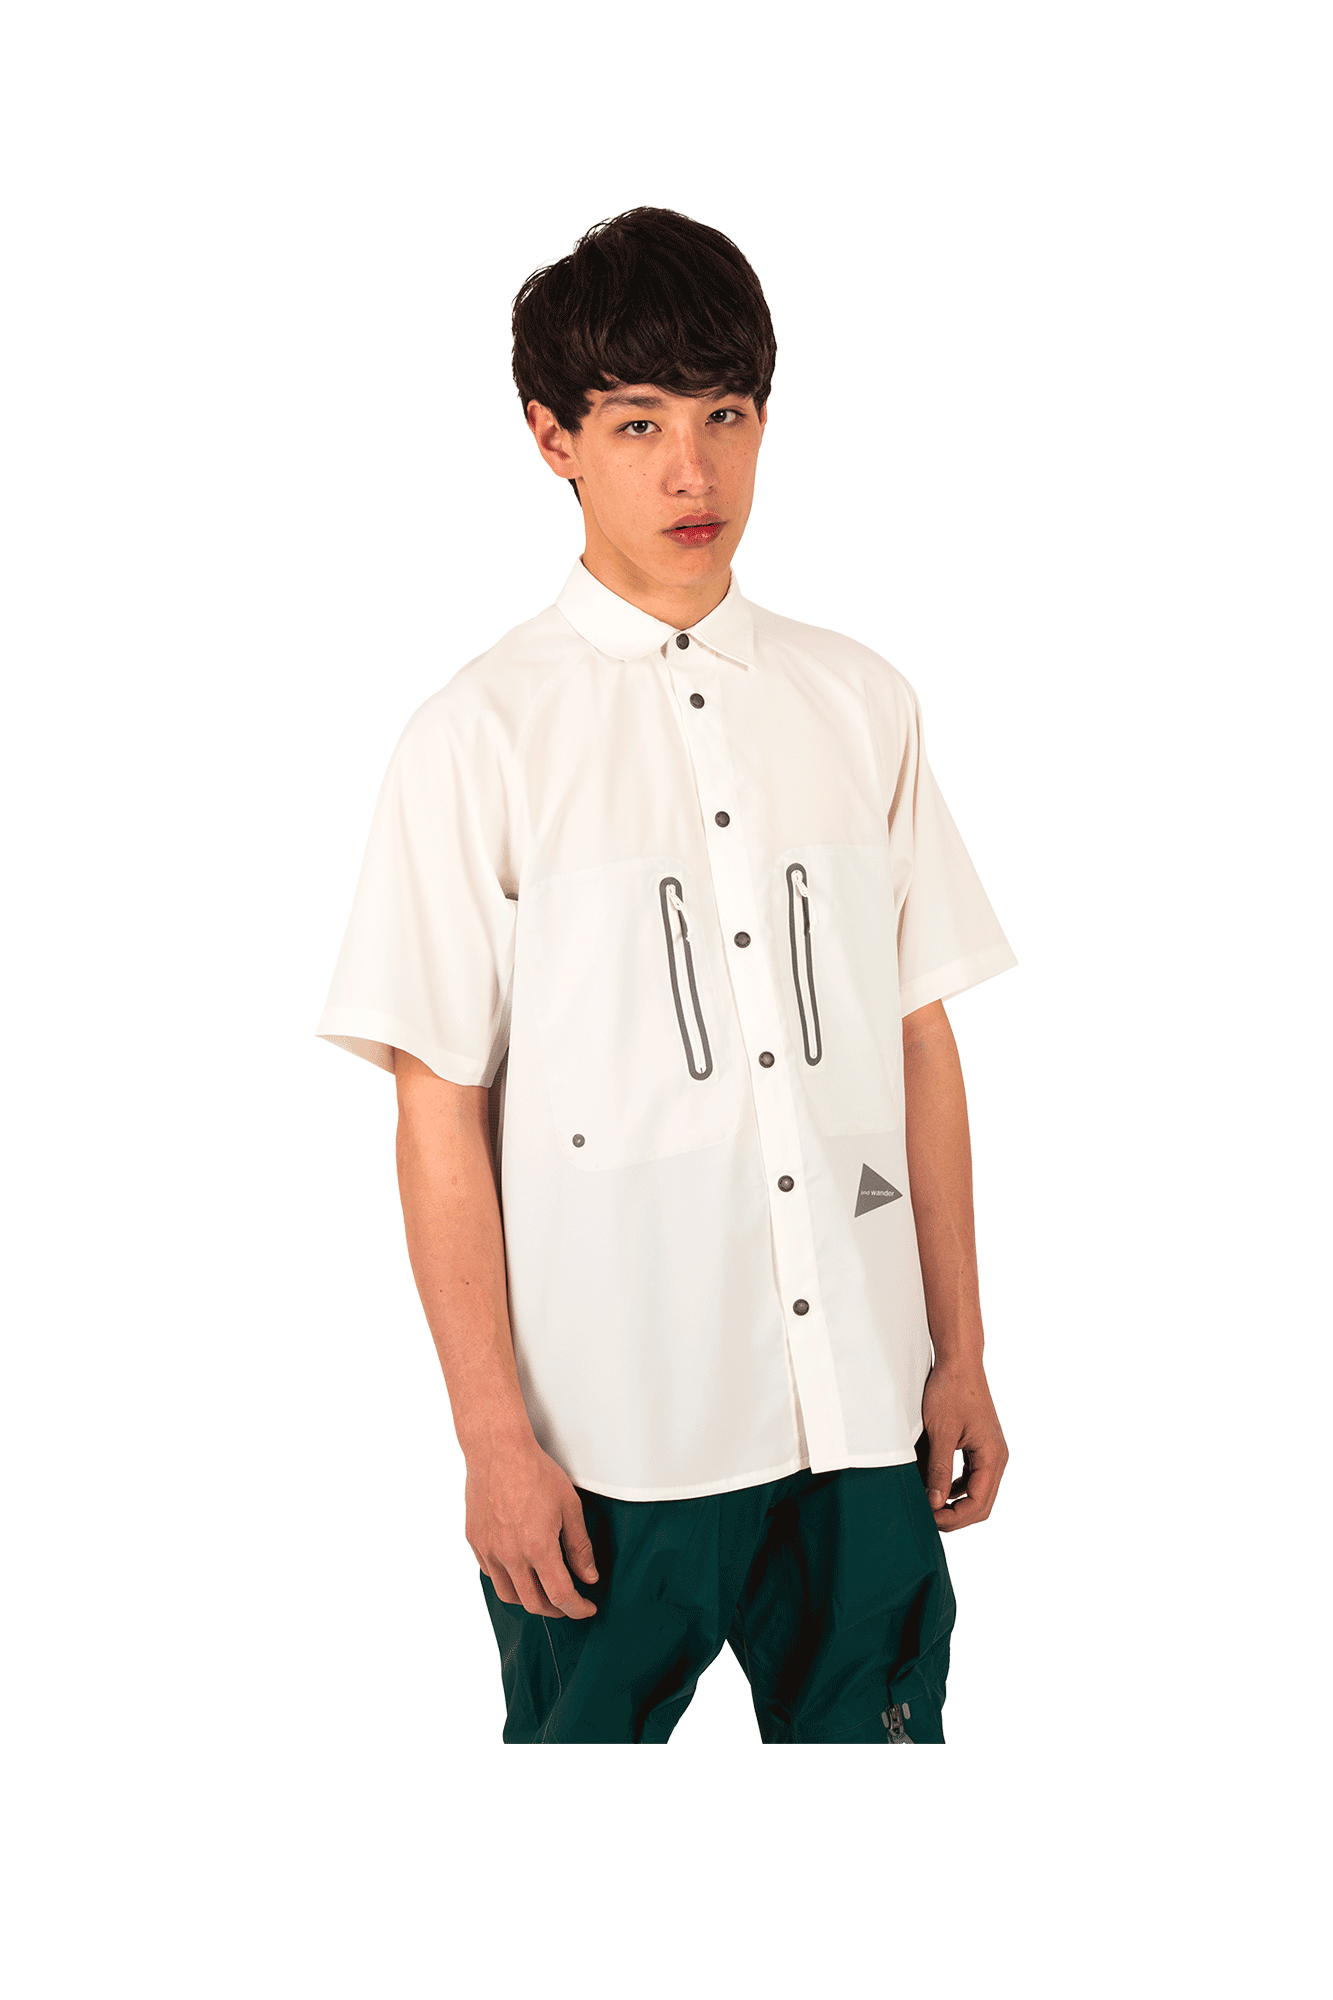 And Wander Camicie Tech S/SL Shirt Bianco AW91-FT789#000#WHT#4 - One Block Down